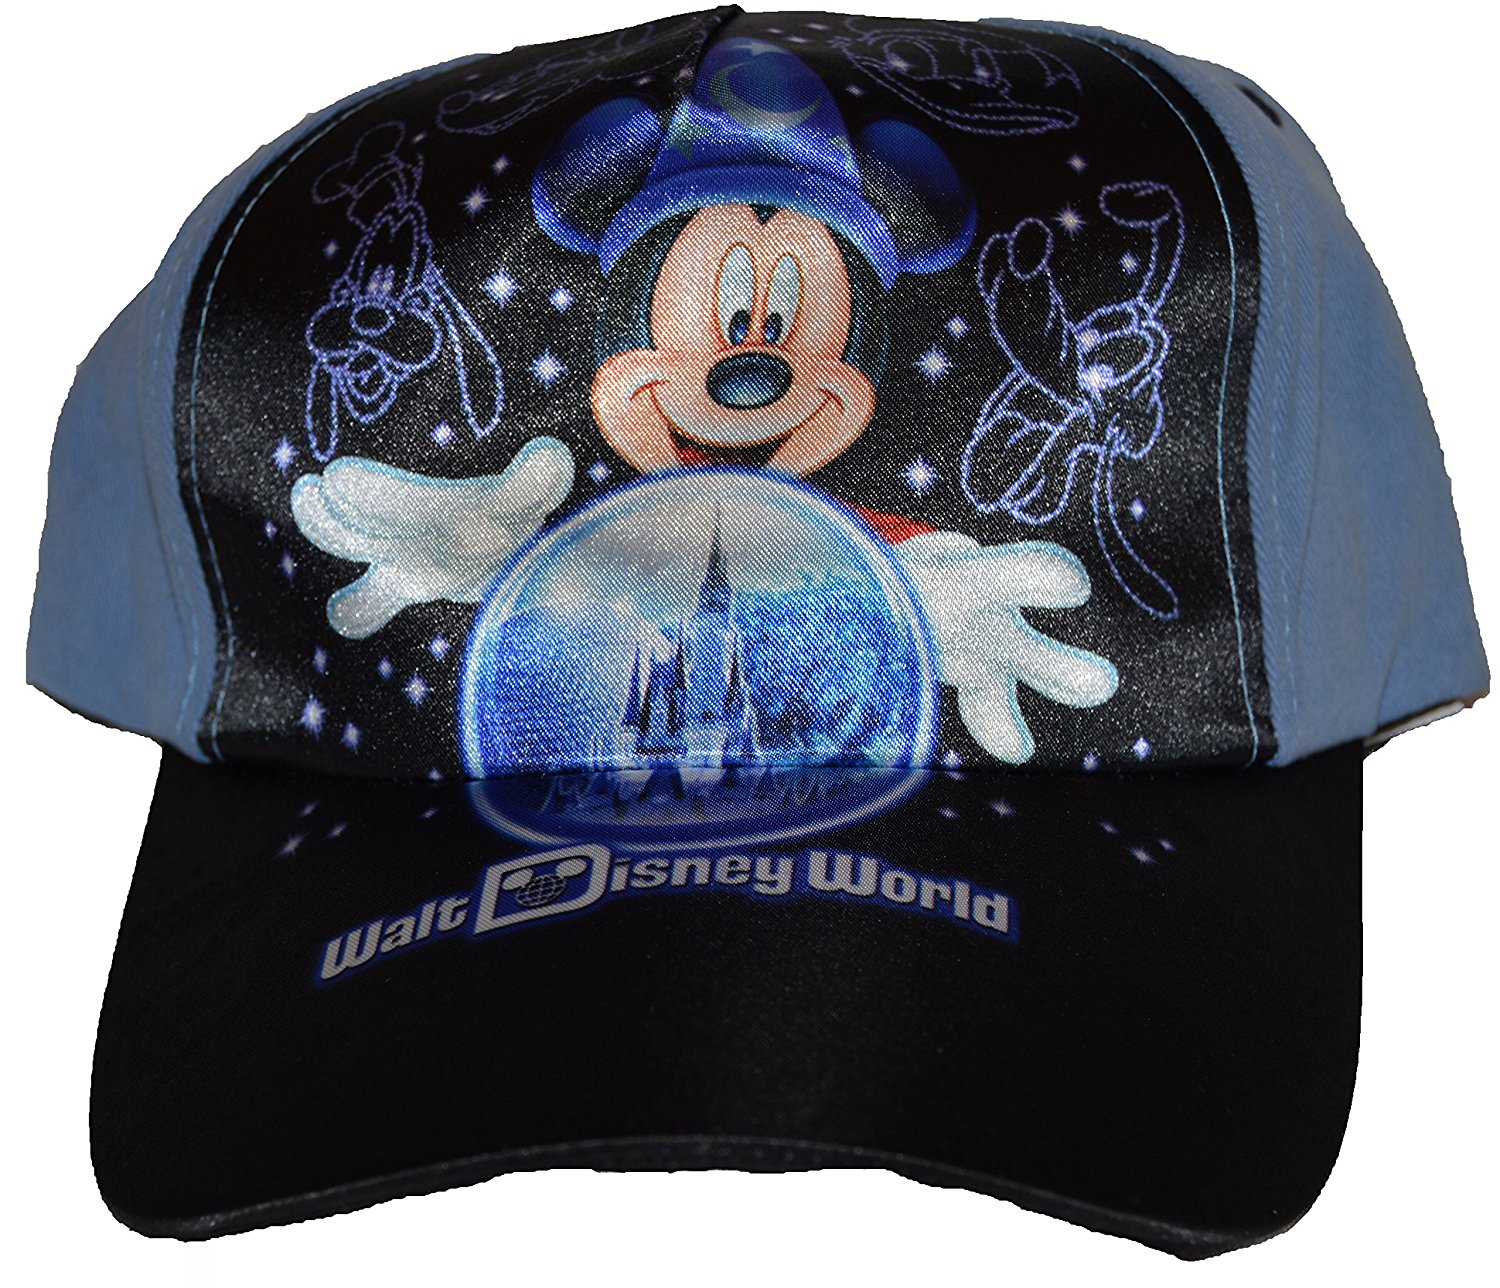 5c1d652f595 Get Quotations · Authentic Disney Hat Baseball Cap for Boys Mickey Mouse  Sorcerer